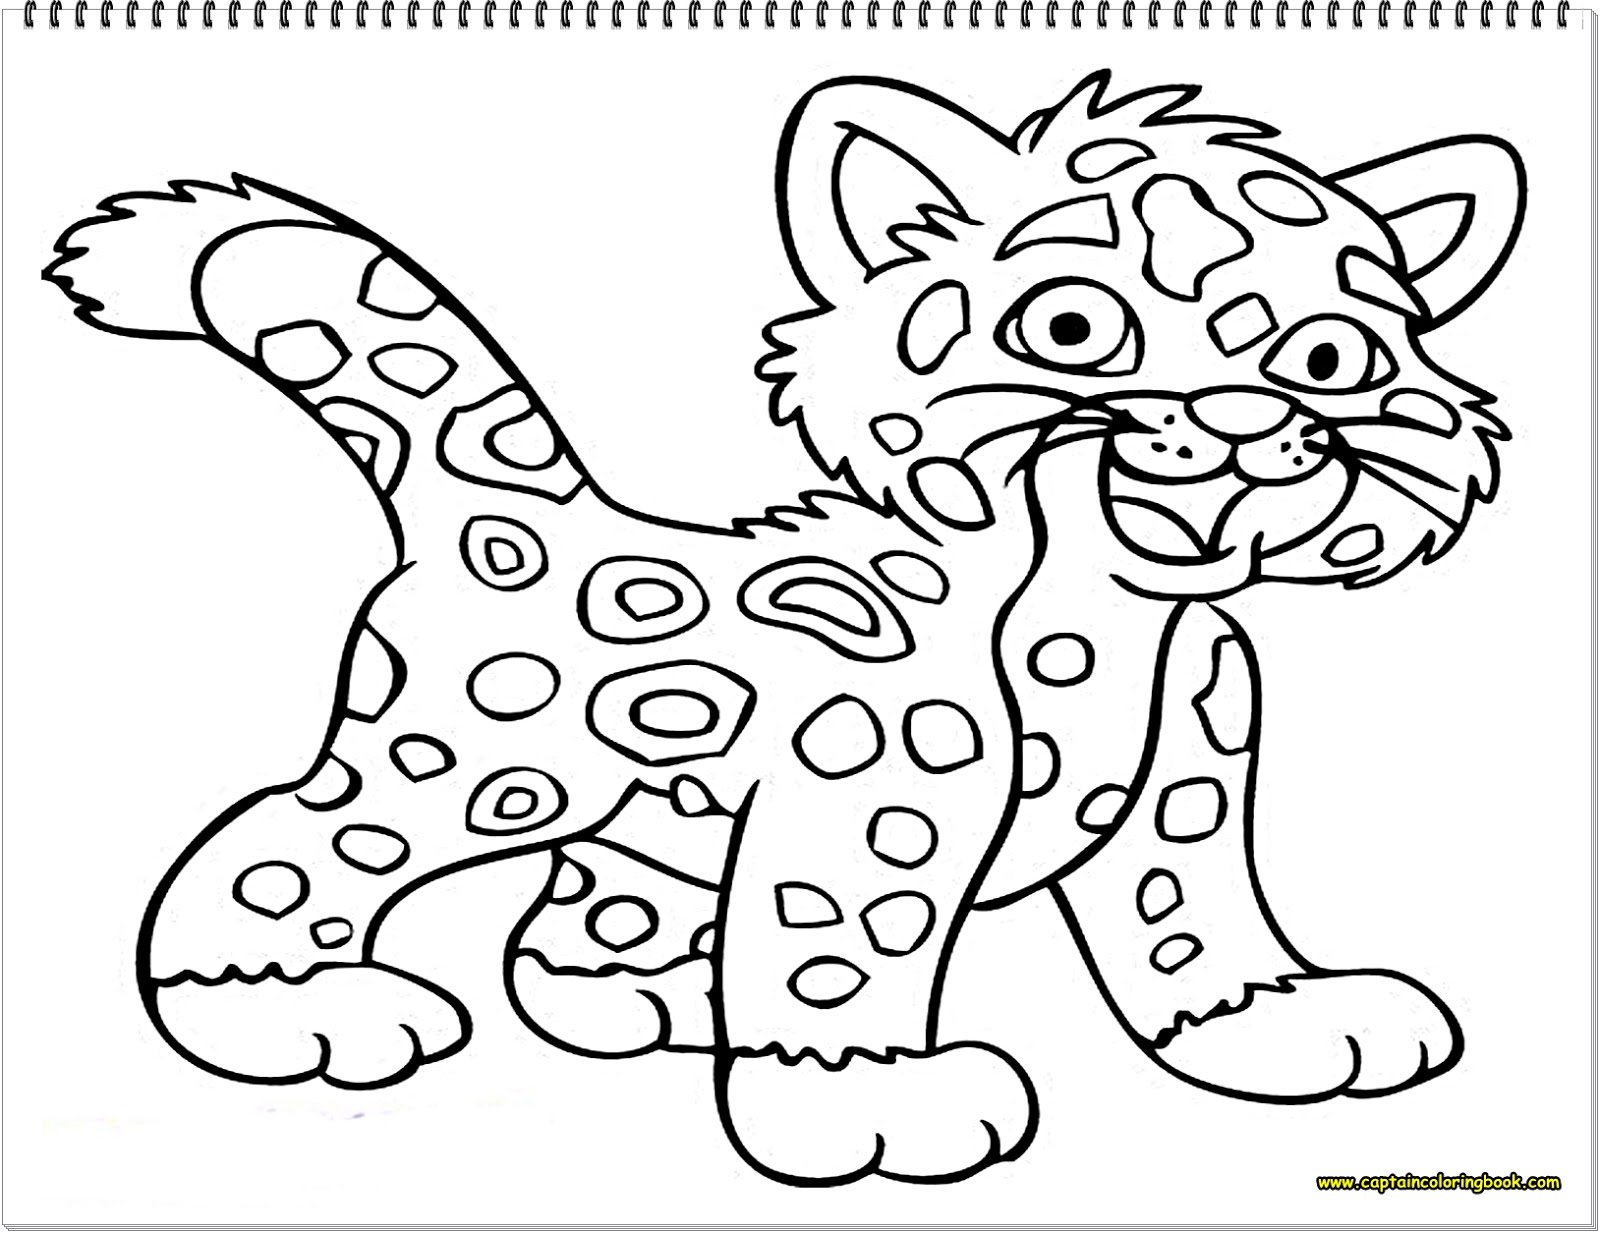 1600x1233 Animal Coloring Pages High Quality Coloring Pages